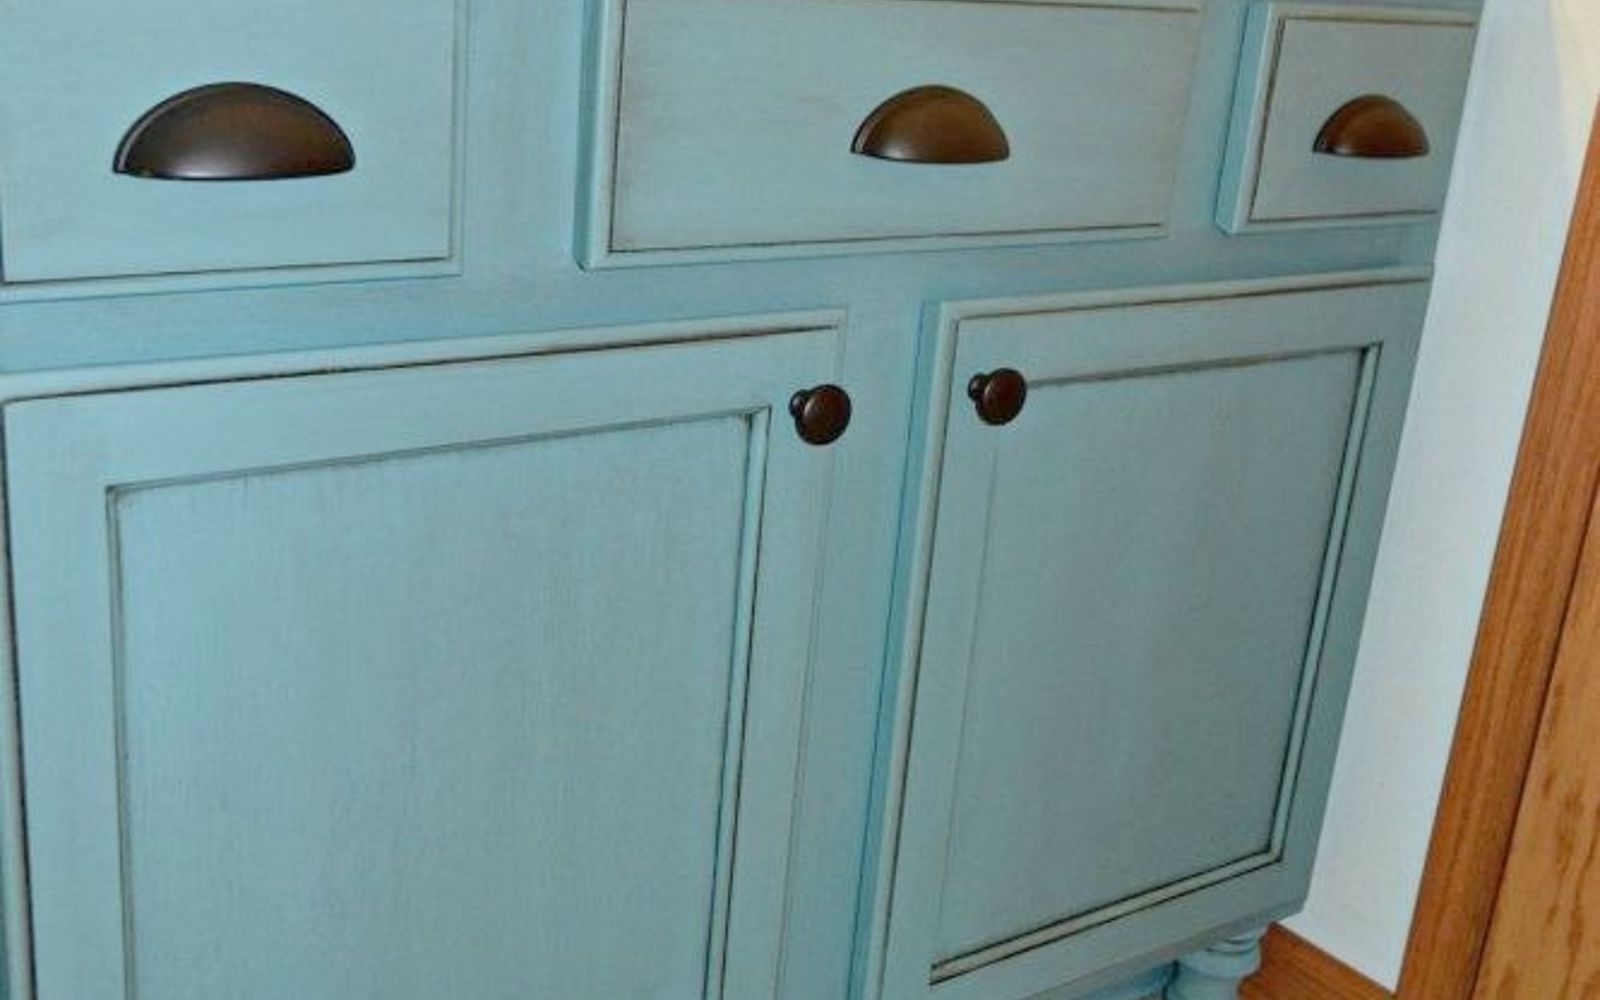 Redo Bathroom Cabinets Unique 11 Lowcost Ways To Replace Or Redo A Hideous Bathroom Vanity . Review